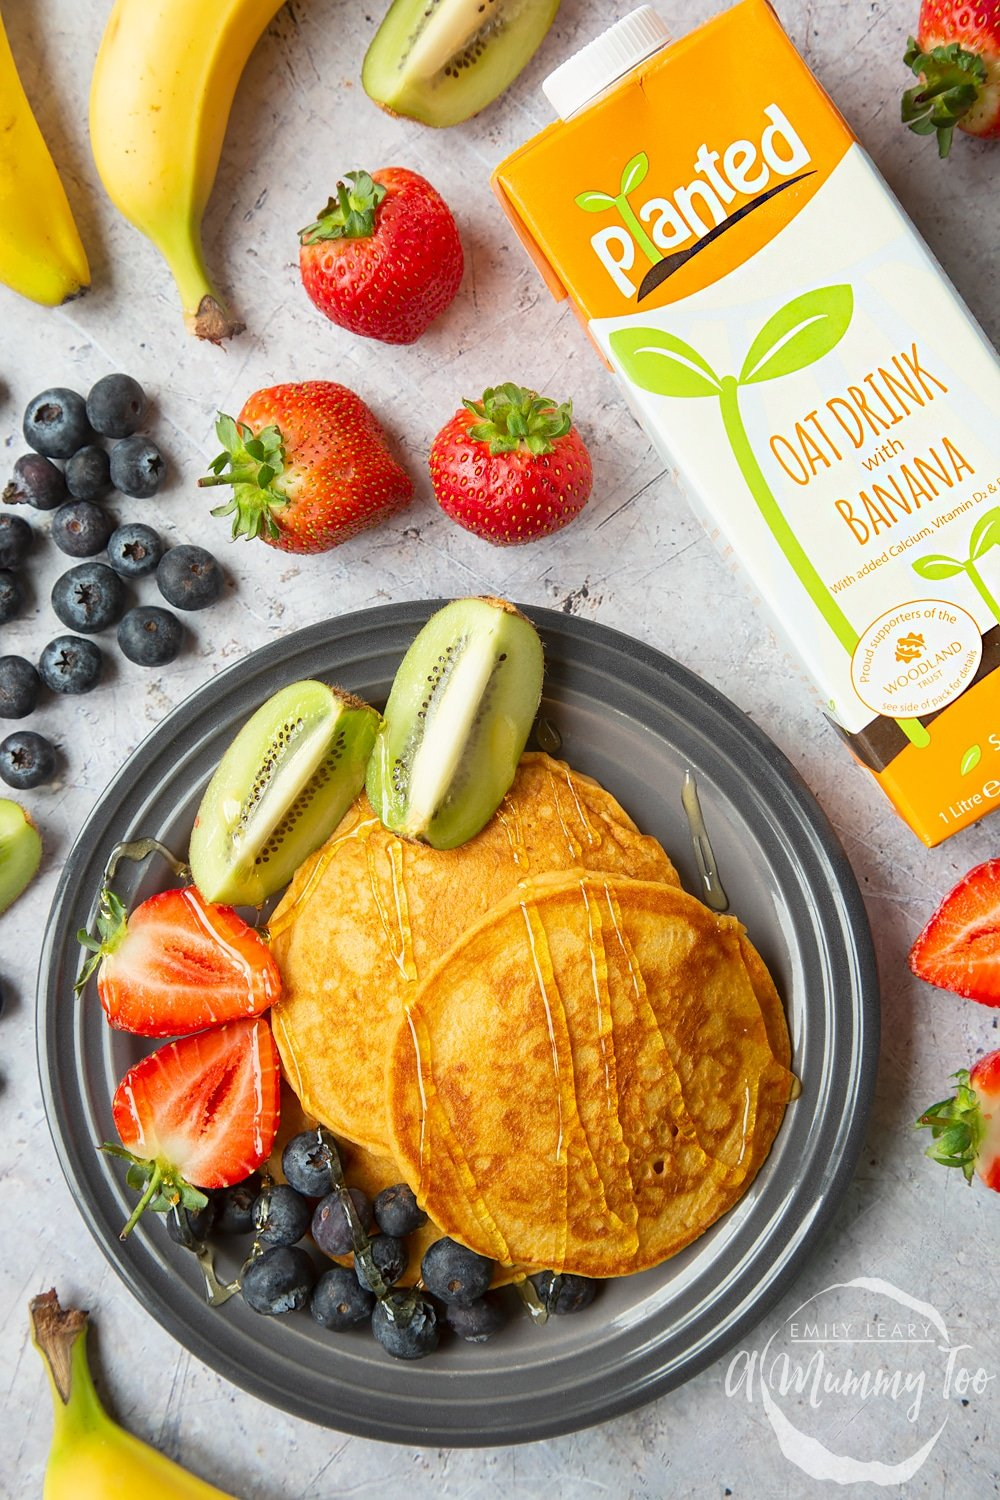 Sweet potato pancakes served with fresh fruit, made with Planted oat drink with banana